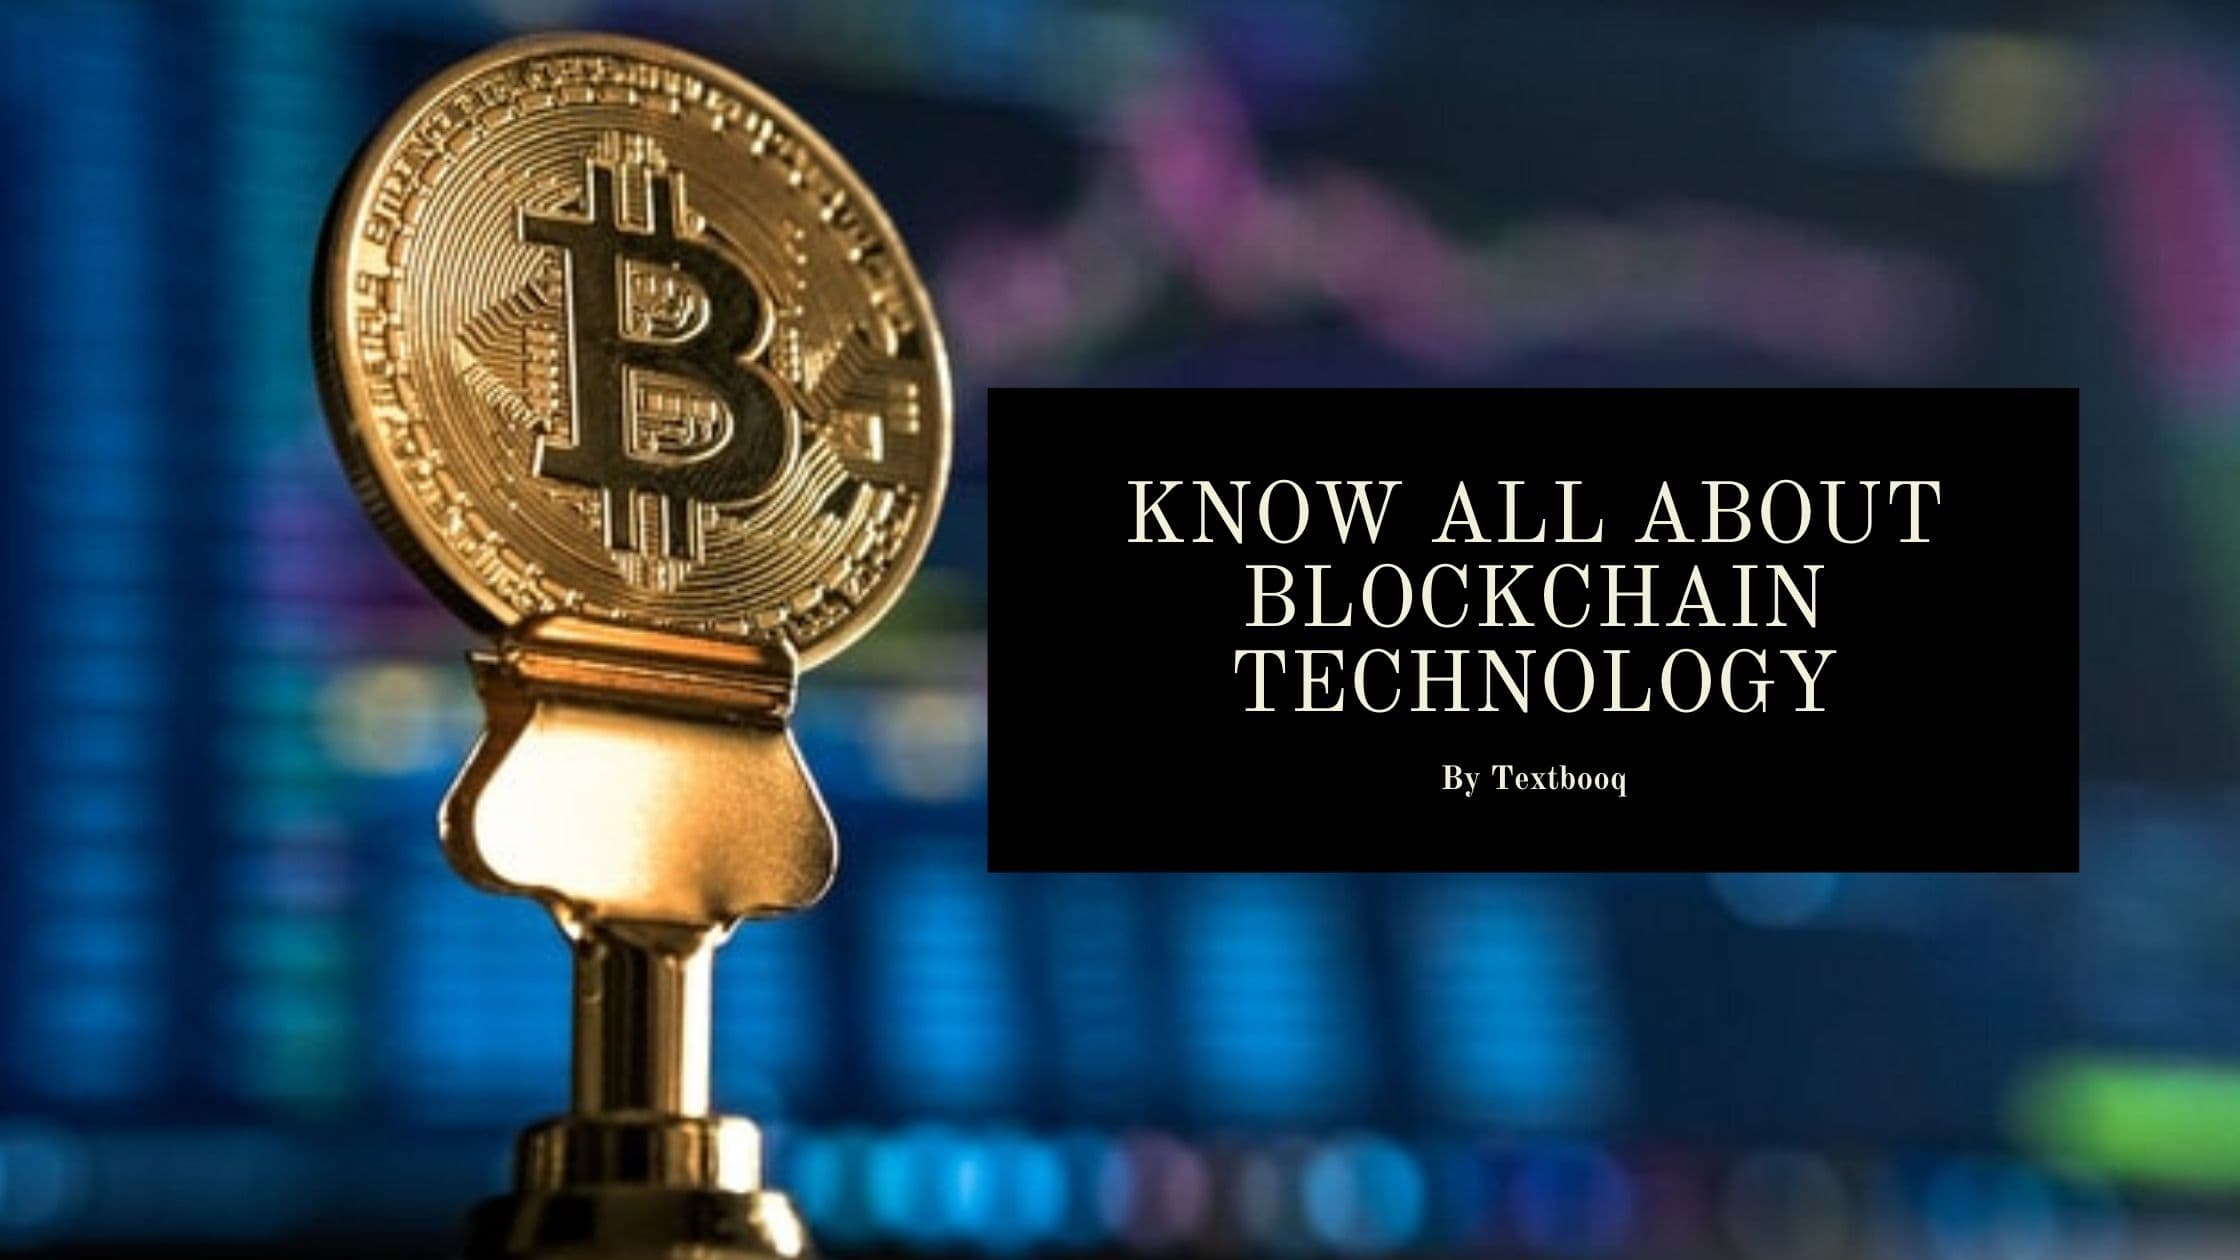 Know All About Blockchain Technology